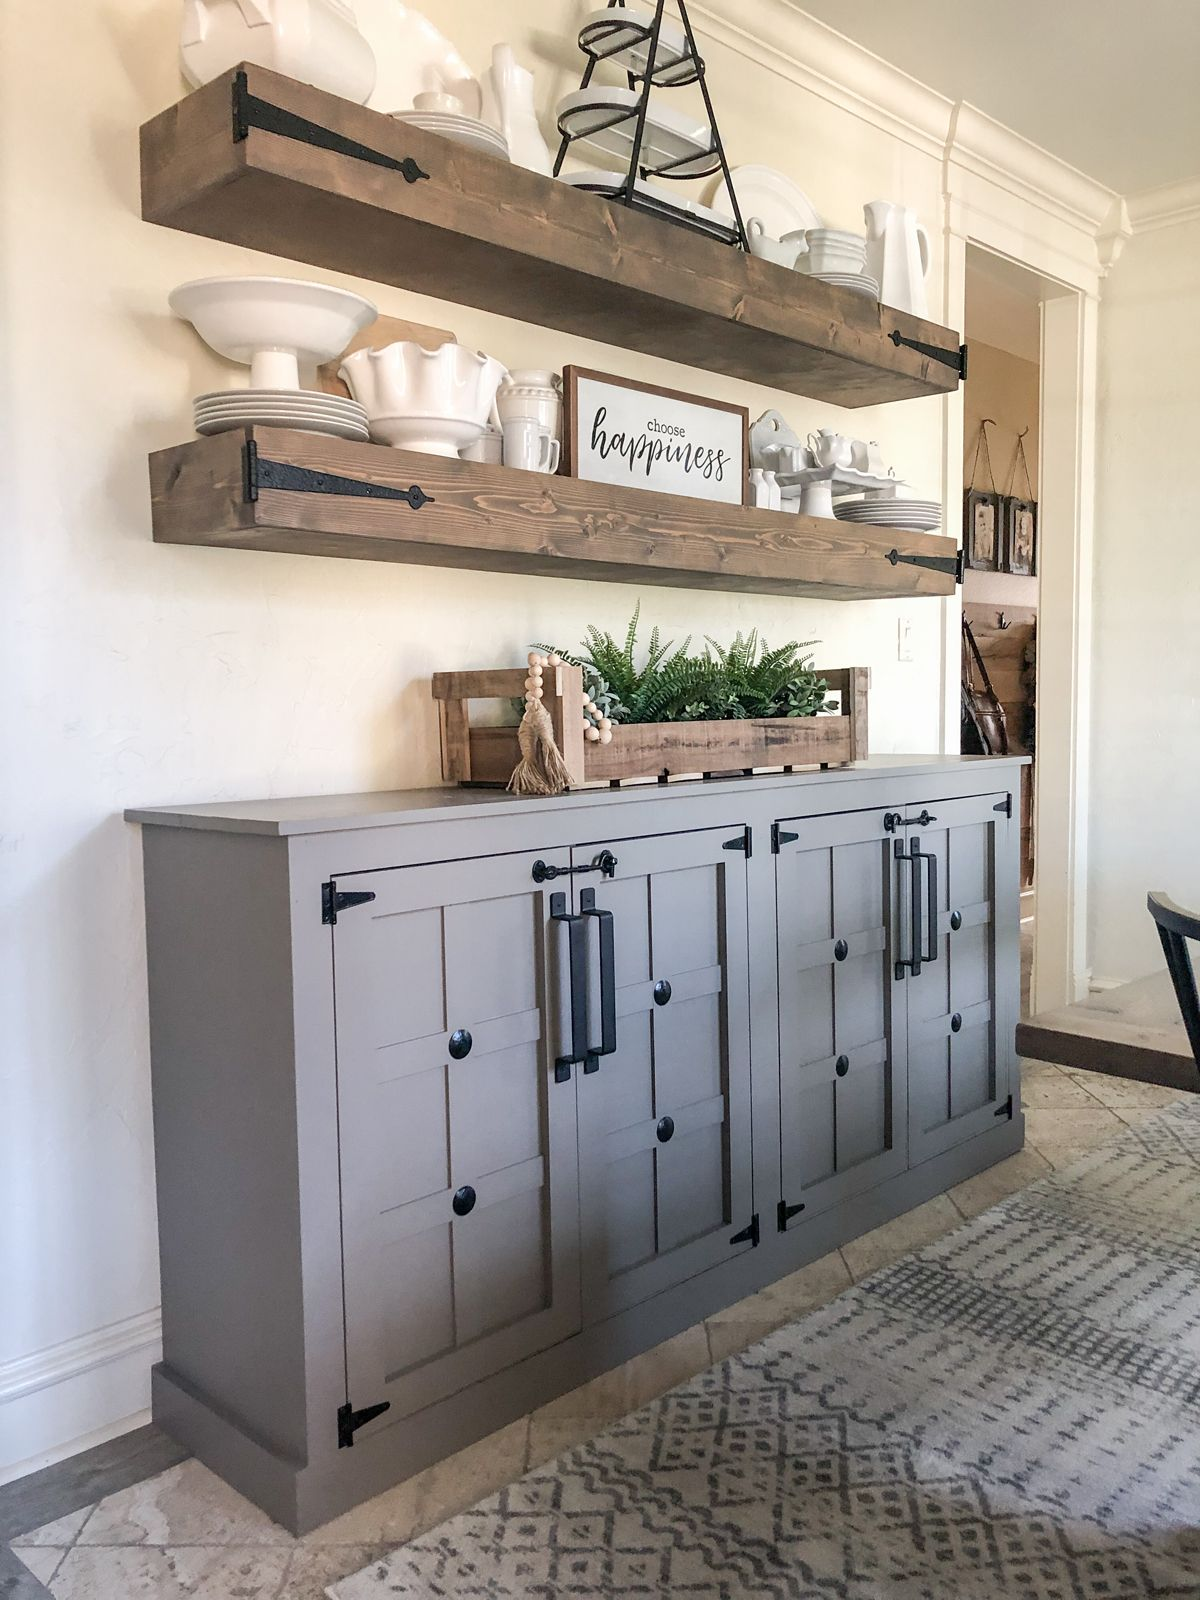 Diy Modern Farmhouse Cabinet Free Plans By Shanty2chic Modern Farmhouse Diy Farmhouse Dining Farmhouse Cabinets